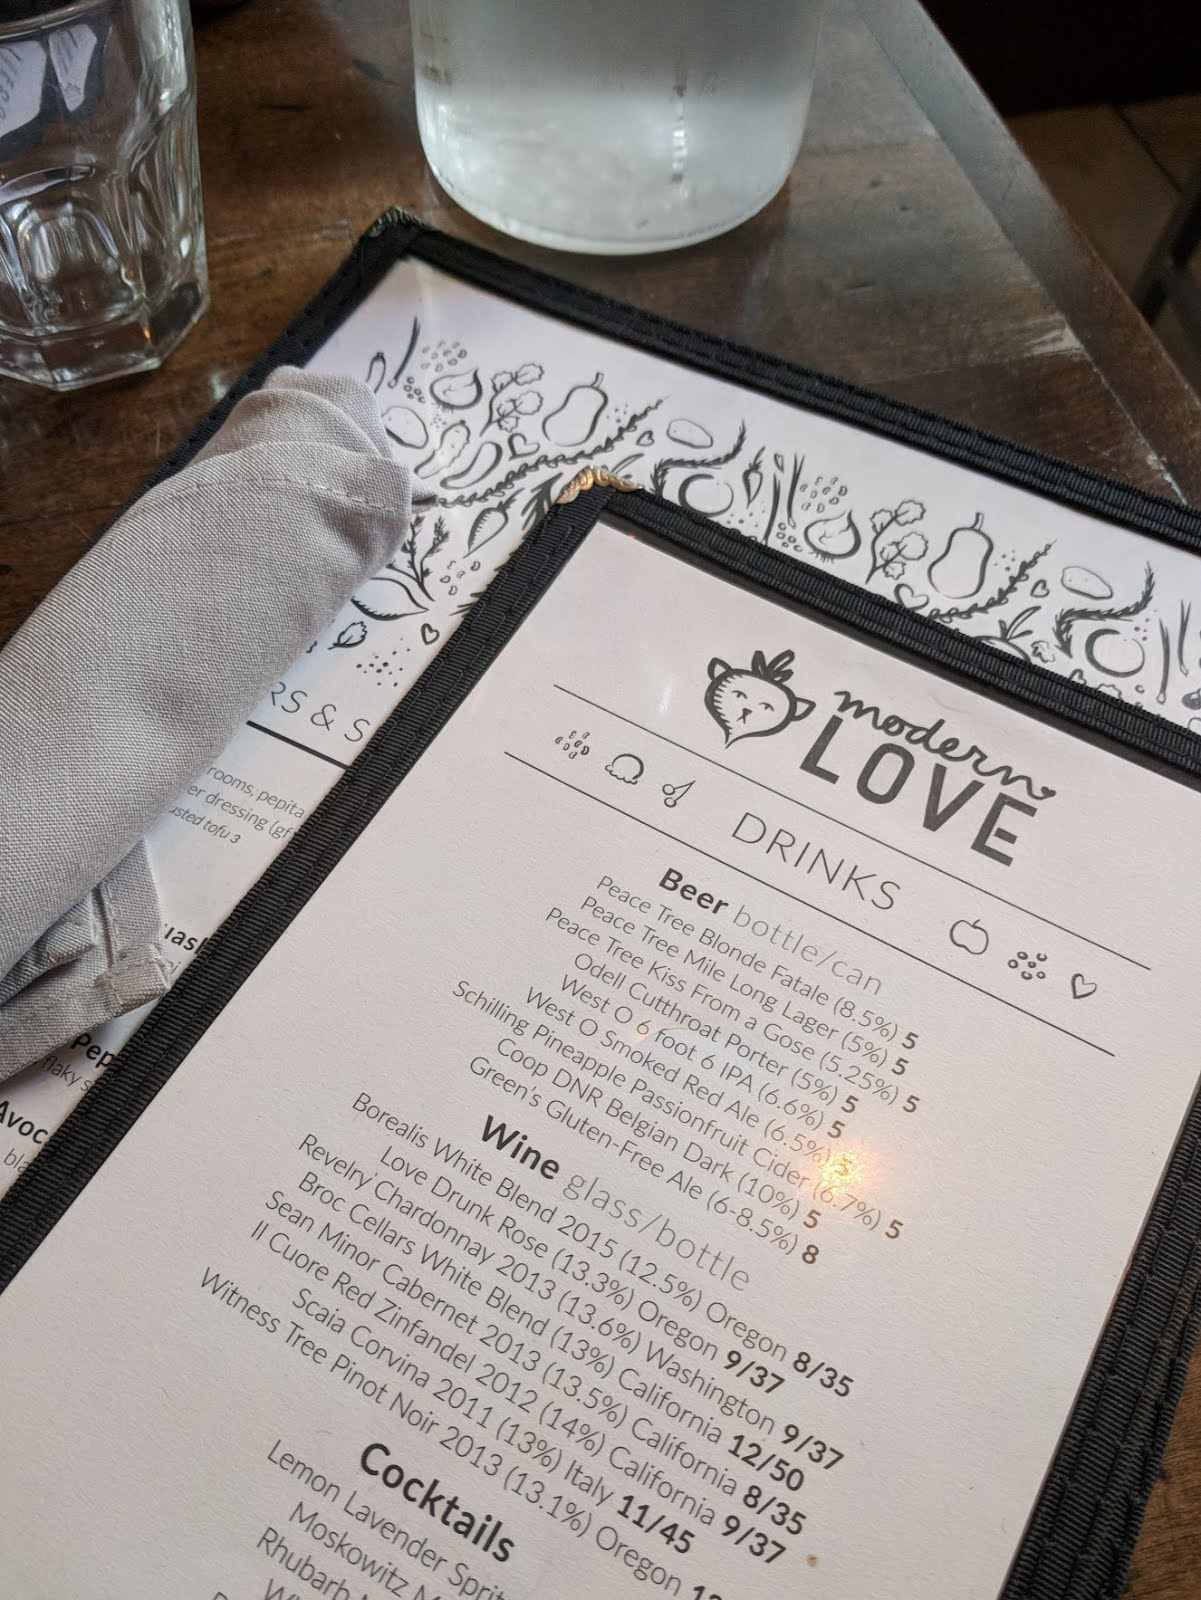 modern love omaha restaurant menu vegan vegetarian food